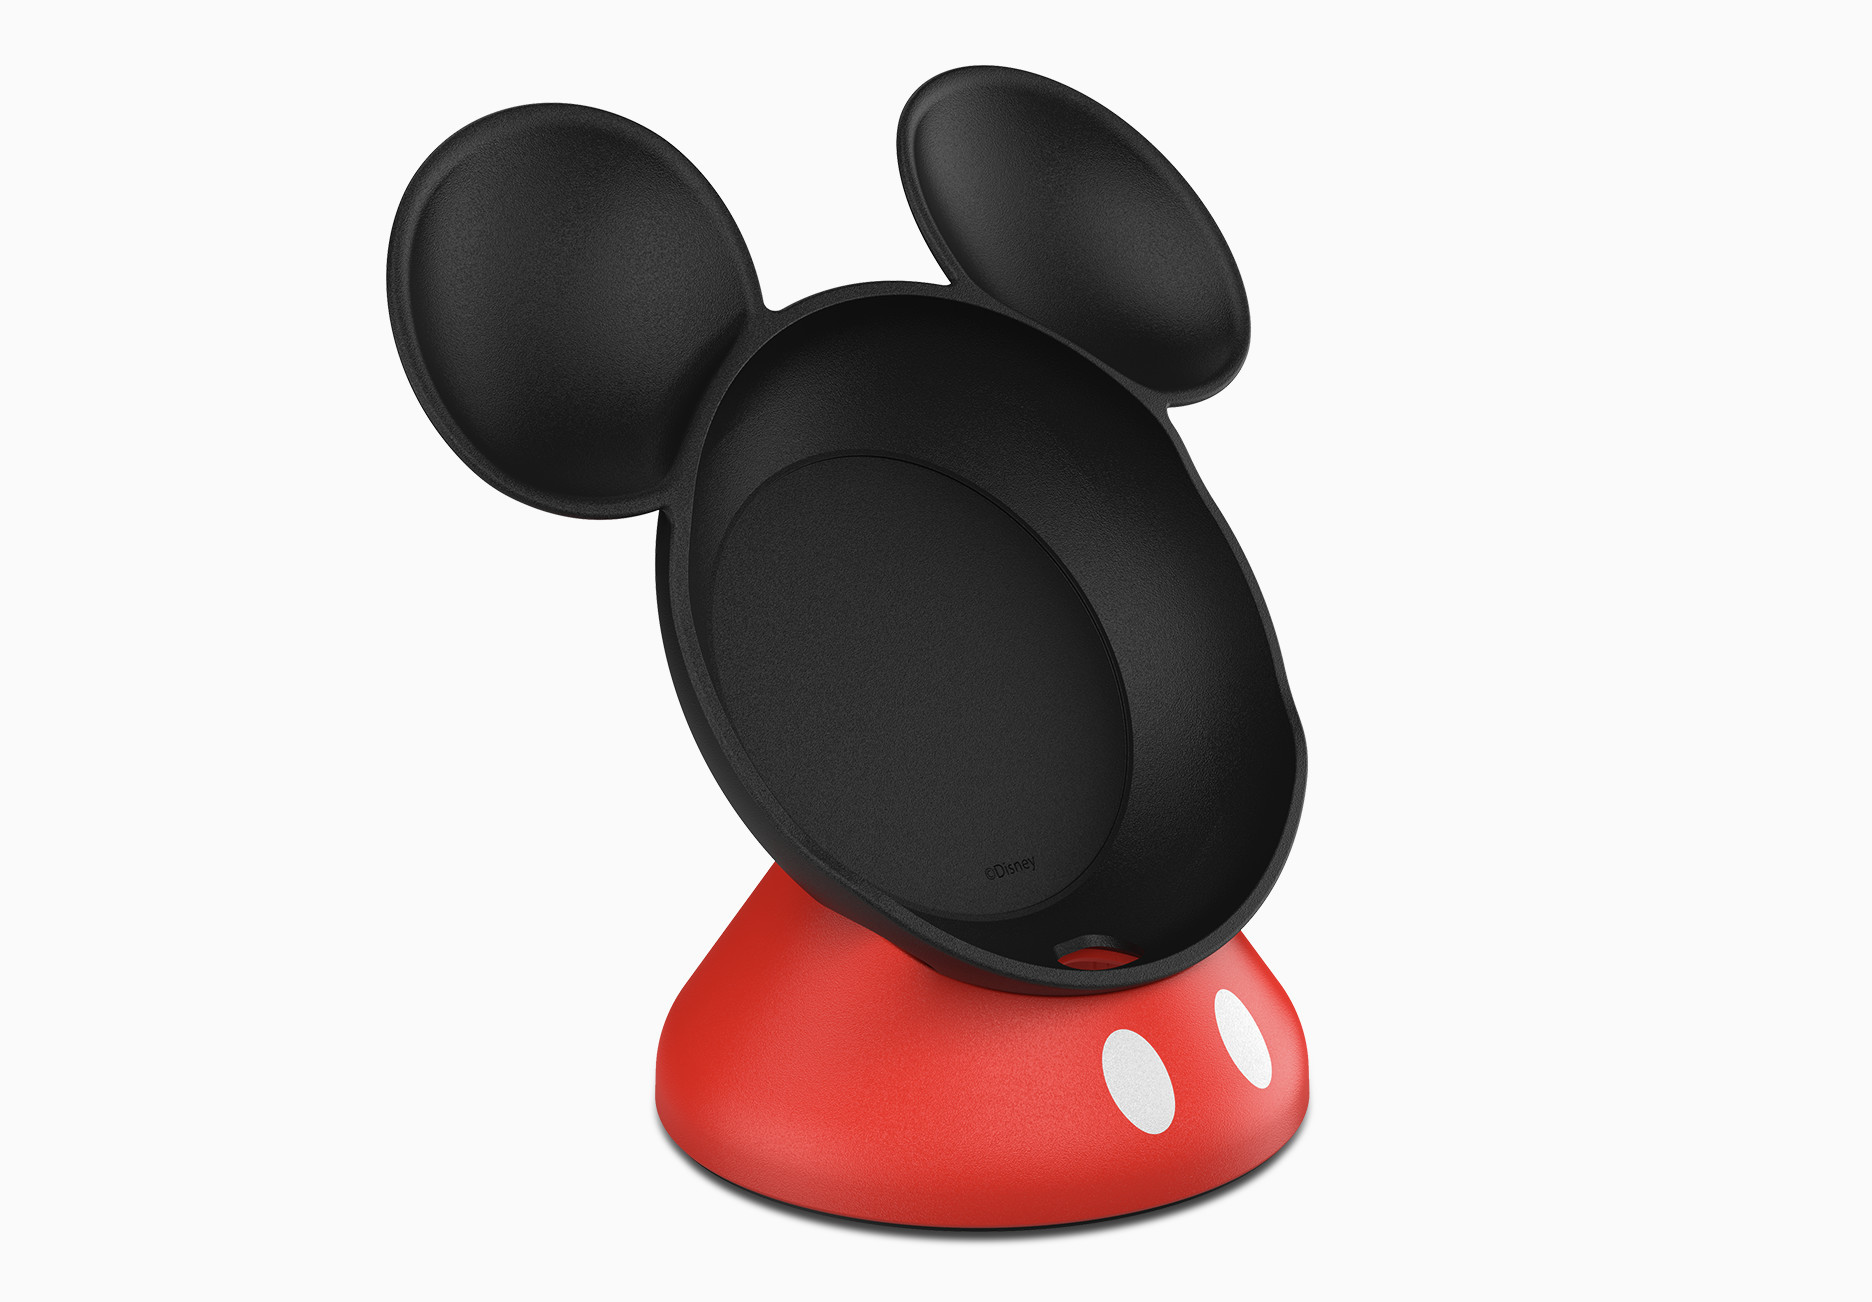 buy online 84501 ec2d9 You can dress up Google's Home Mini speaker to look like Mickey ...